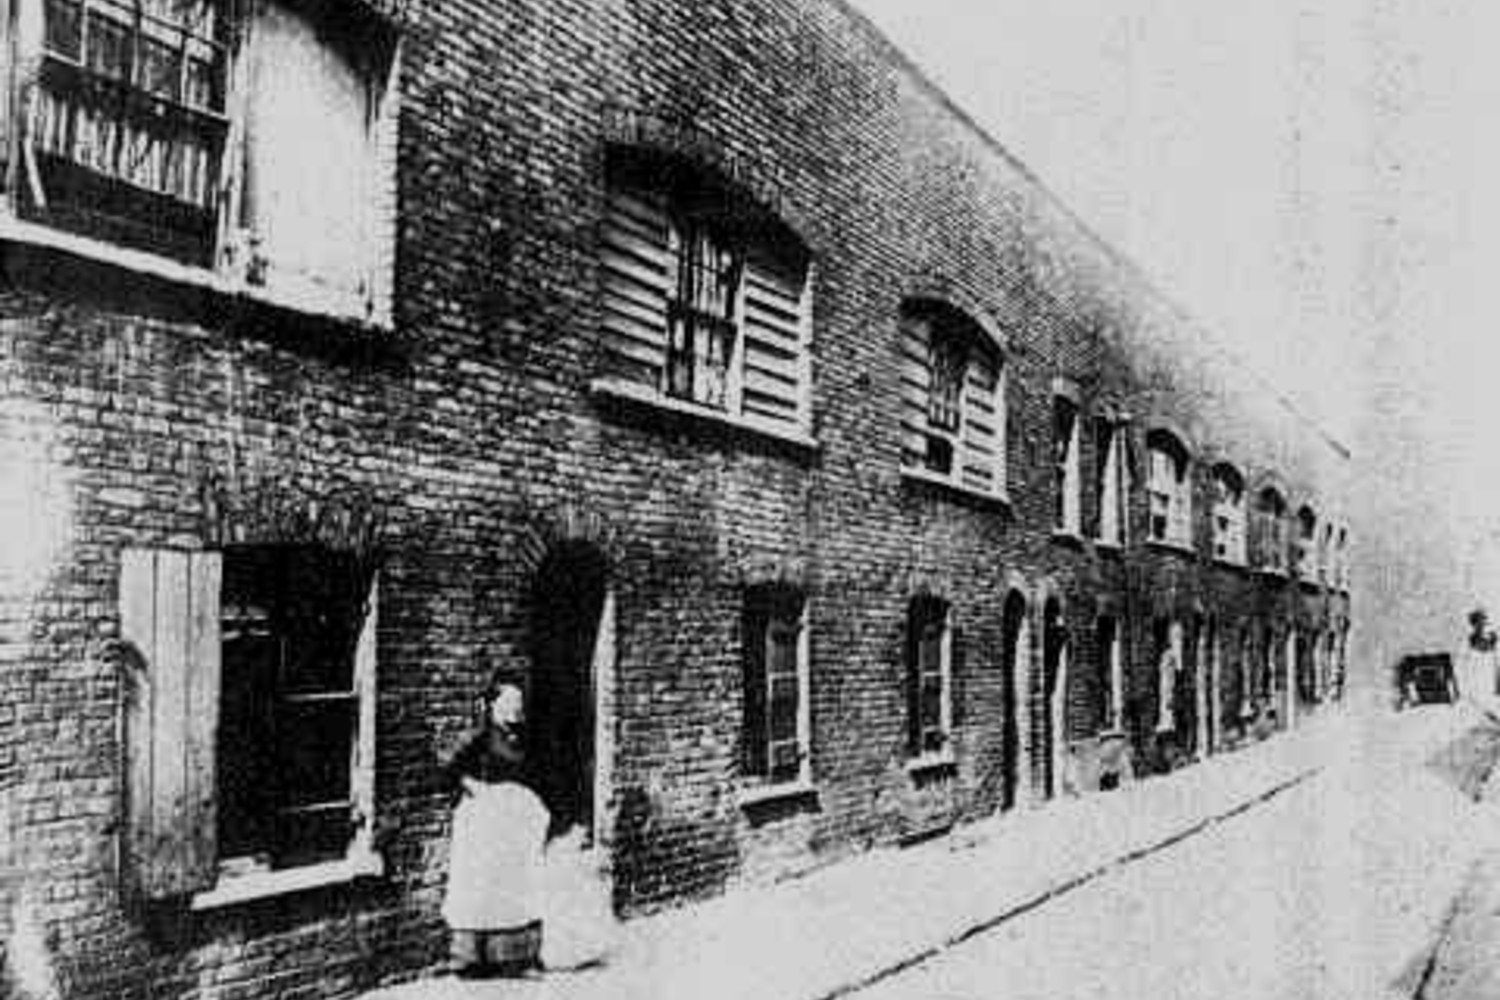 Boundary Street in the 1890s